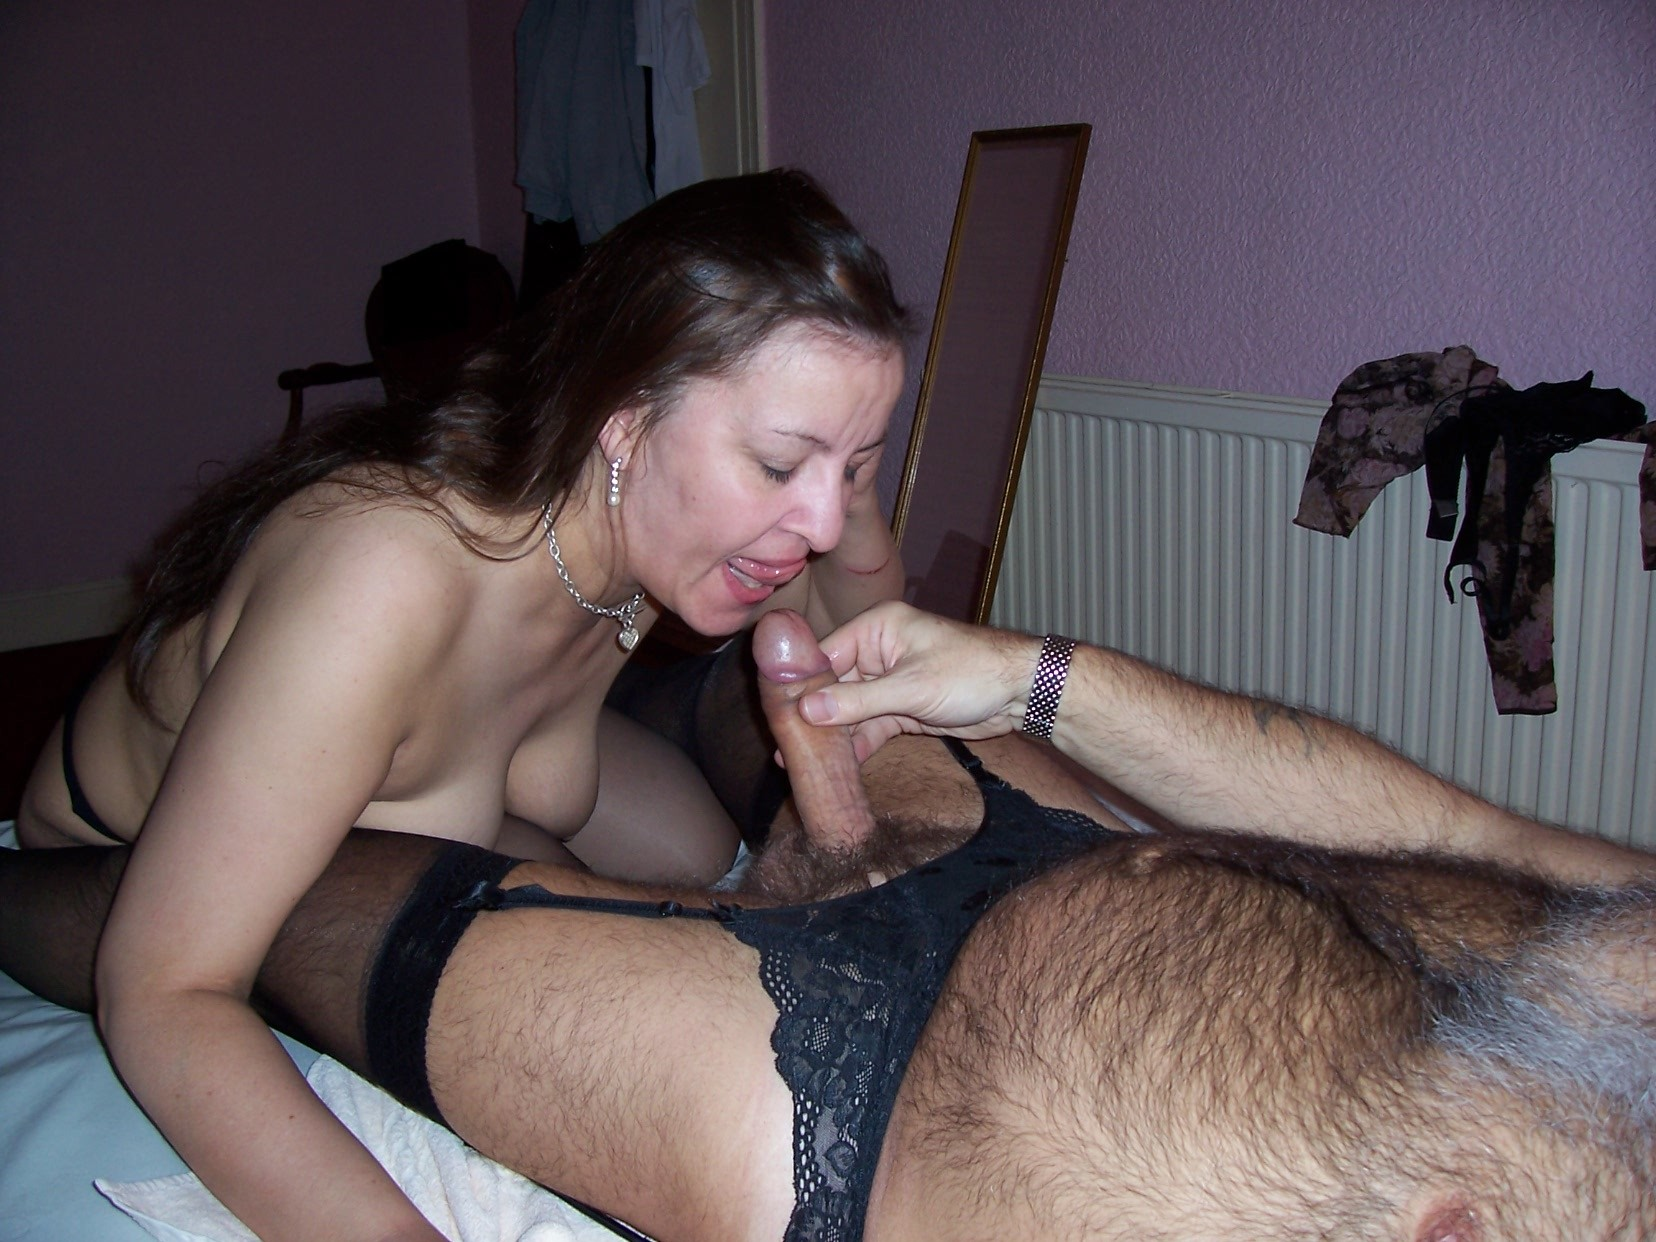 Love fuck Crossdresser homemade sex normally shaved